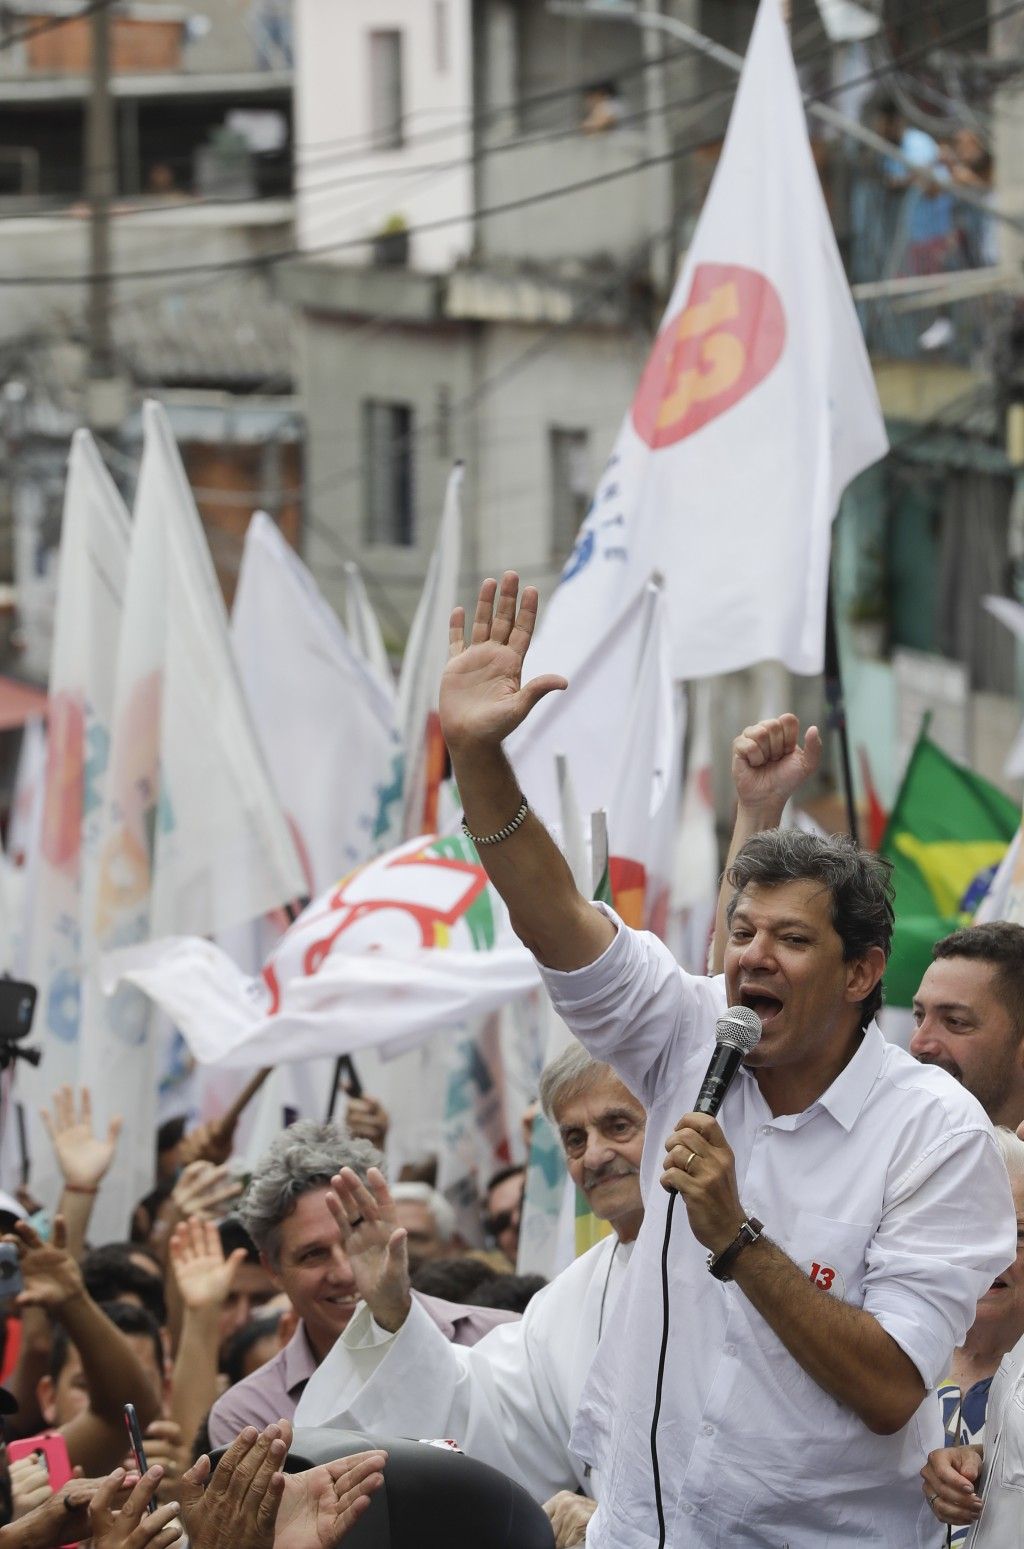 Fernando Haddad, Brazil's presidential candidate for the Workers' Party, speaks during a campaign rally at the Heliopolis slum of Sao Paulo, Brazil, S...